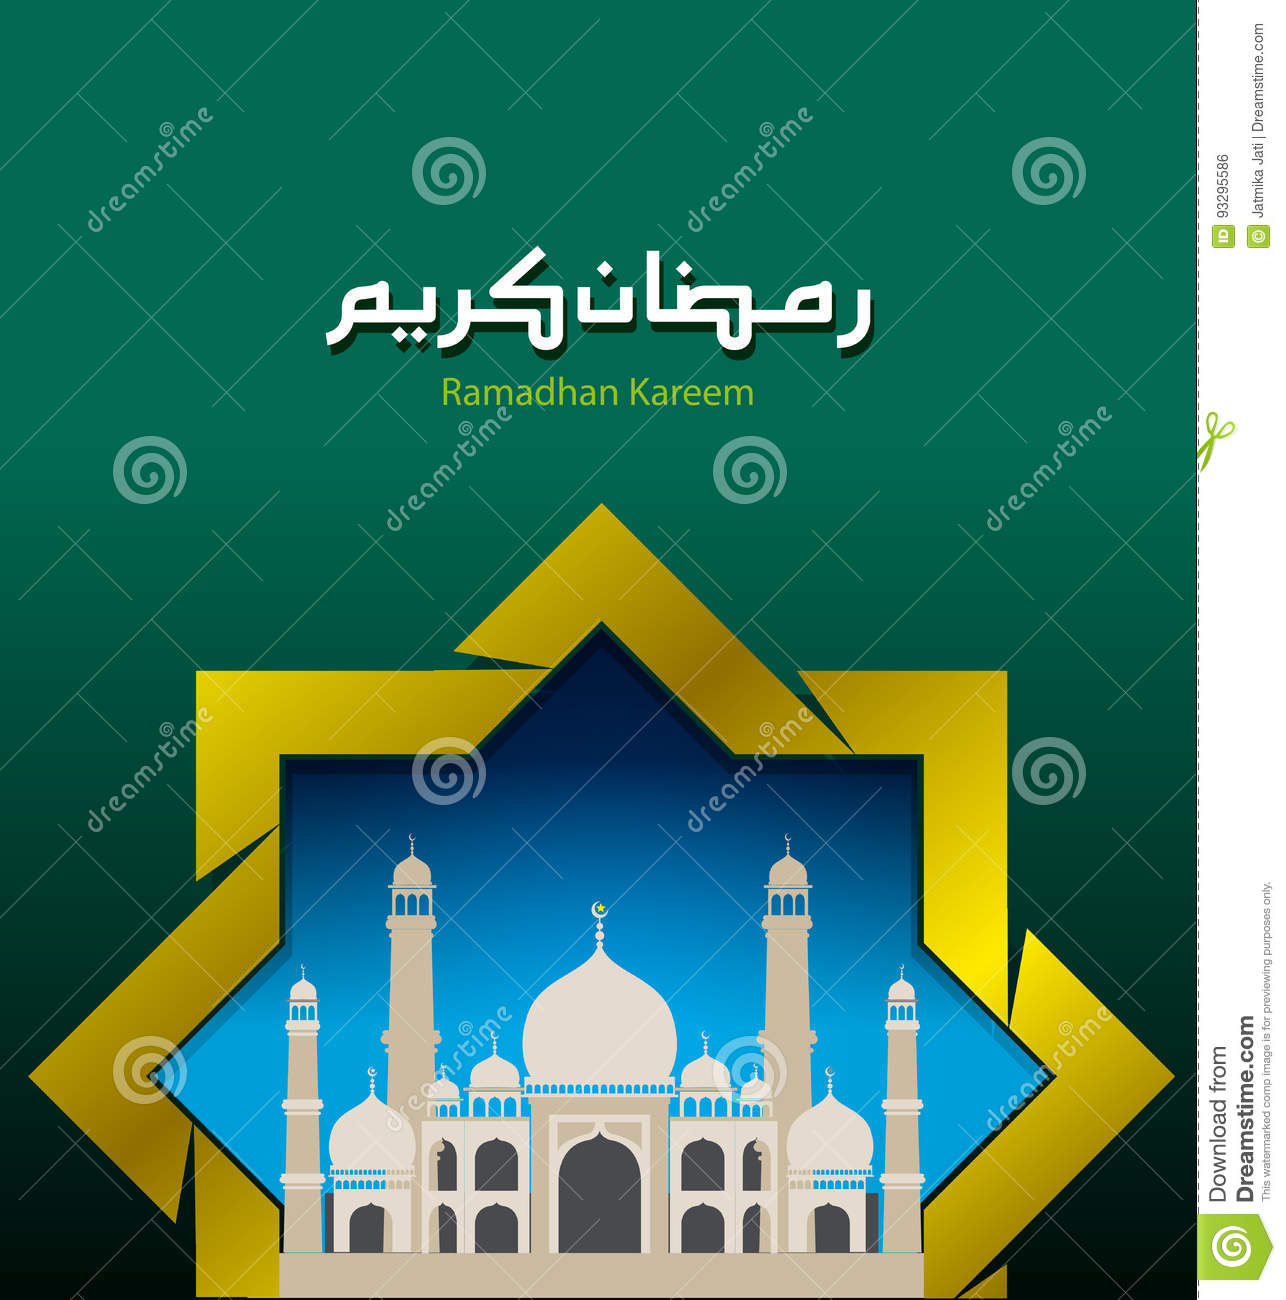 Vector illustration happy ramadan kareem stock vector illustration abstract vector ramadan kareem as a greeting of fasting month full worship for the religion of islam m4hsunfo